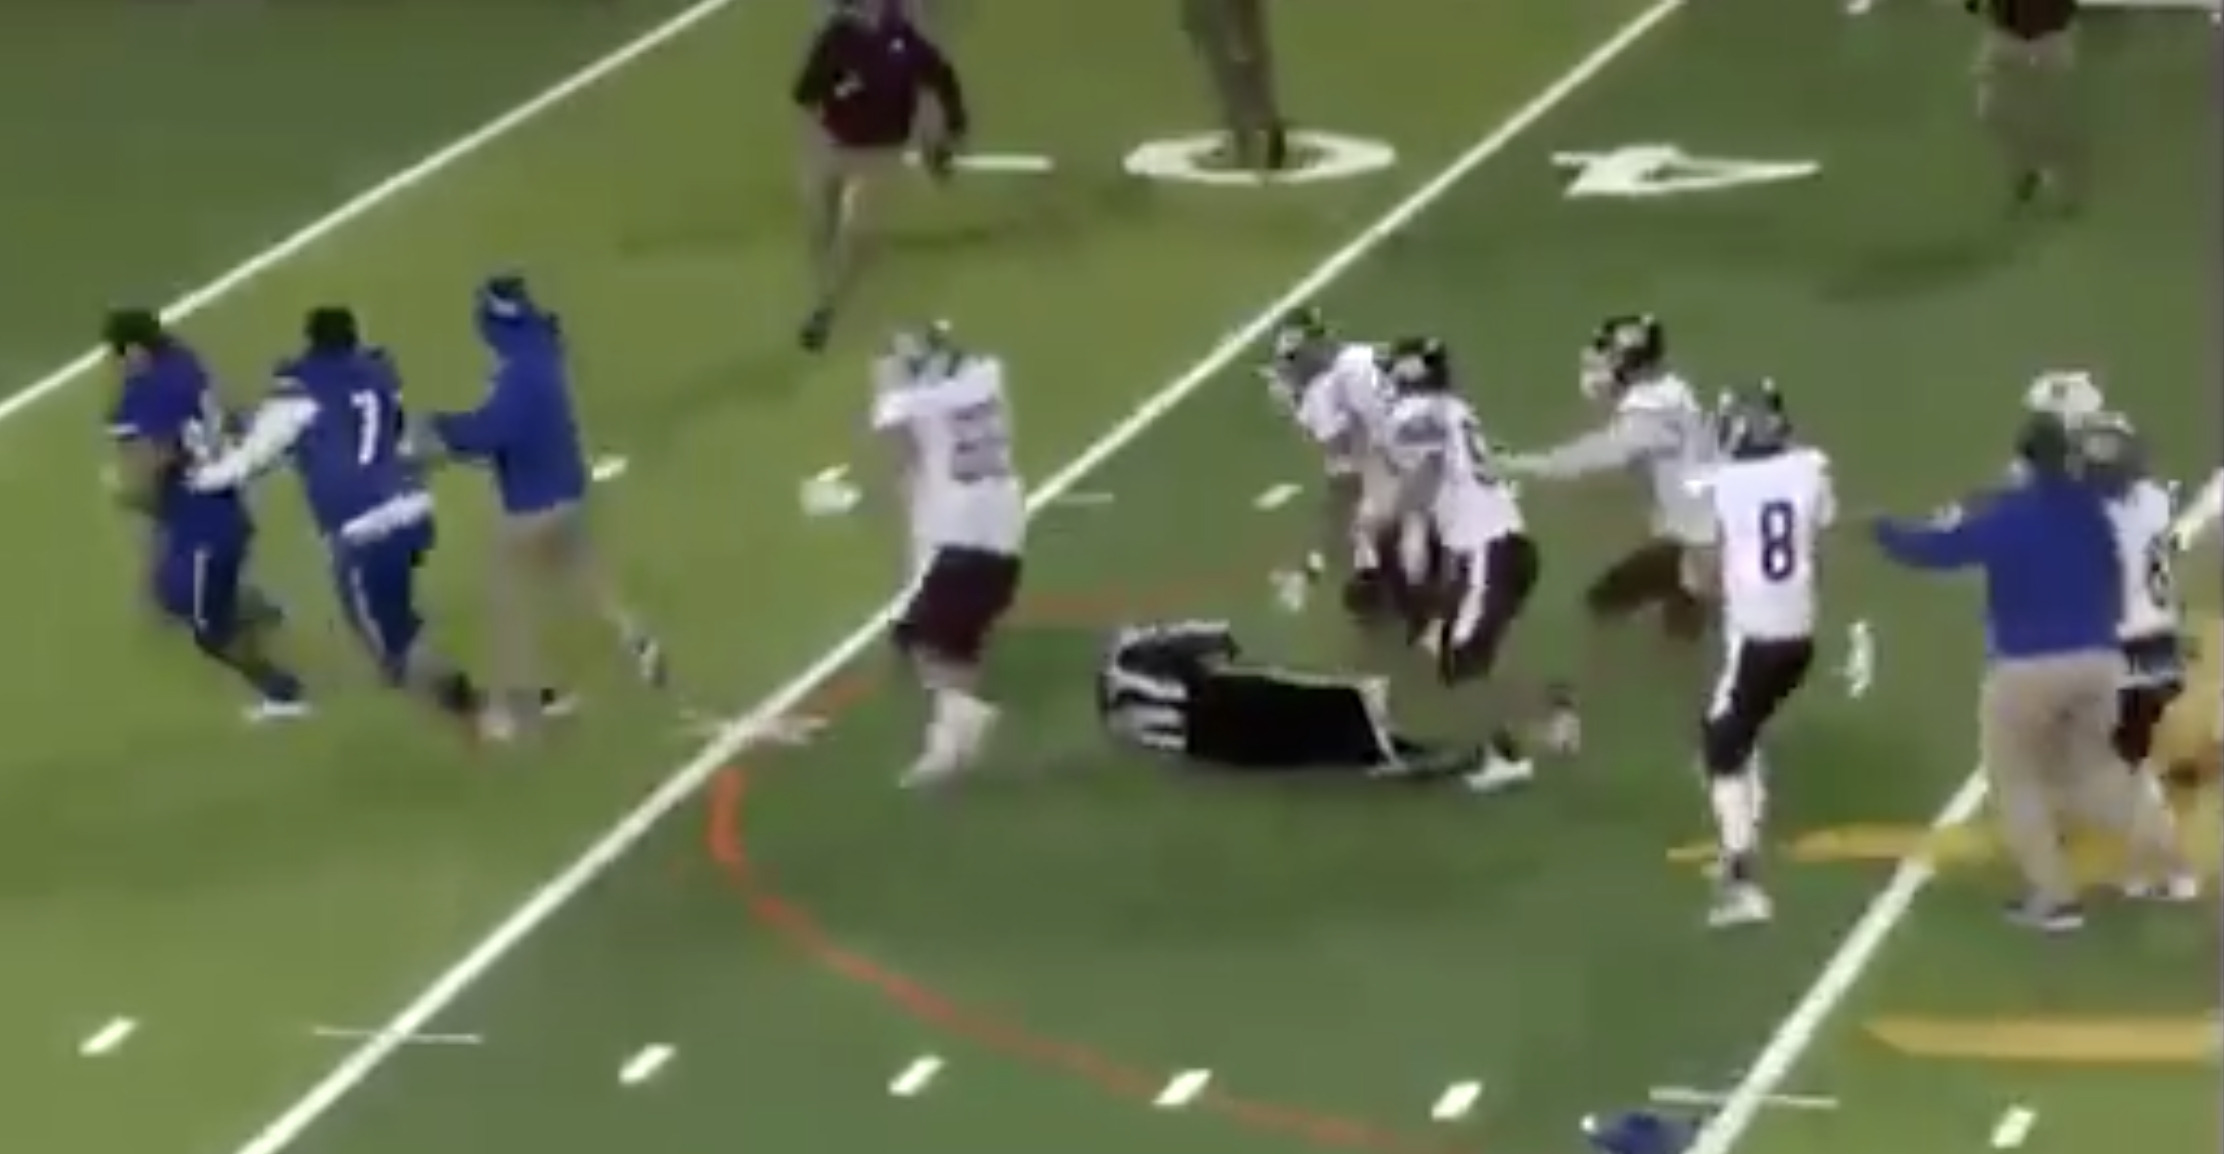 High school football player who body slammed ref thrown in jail